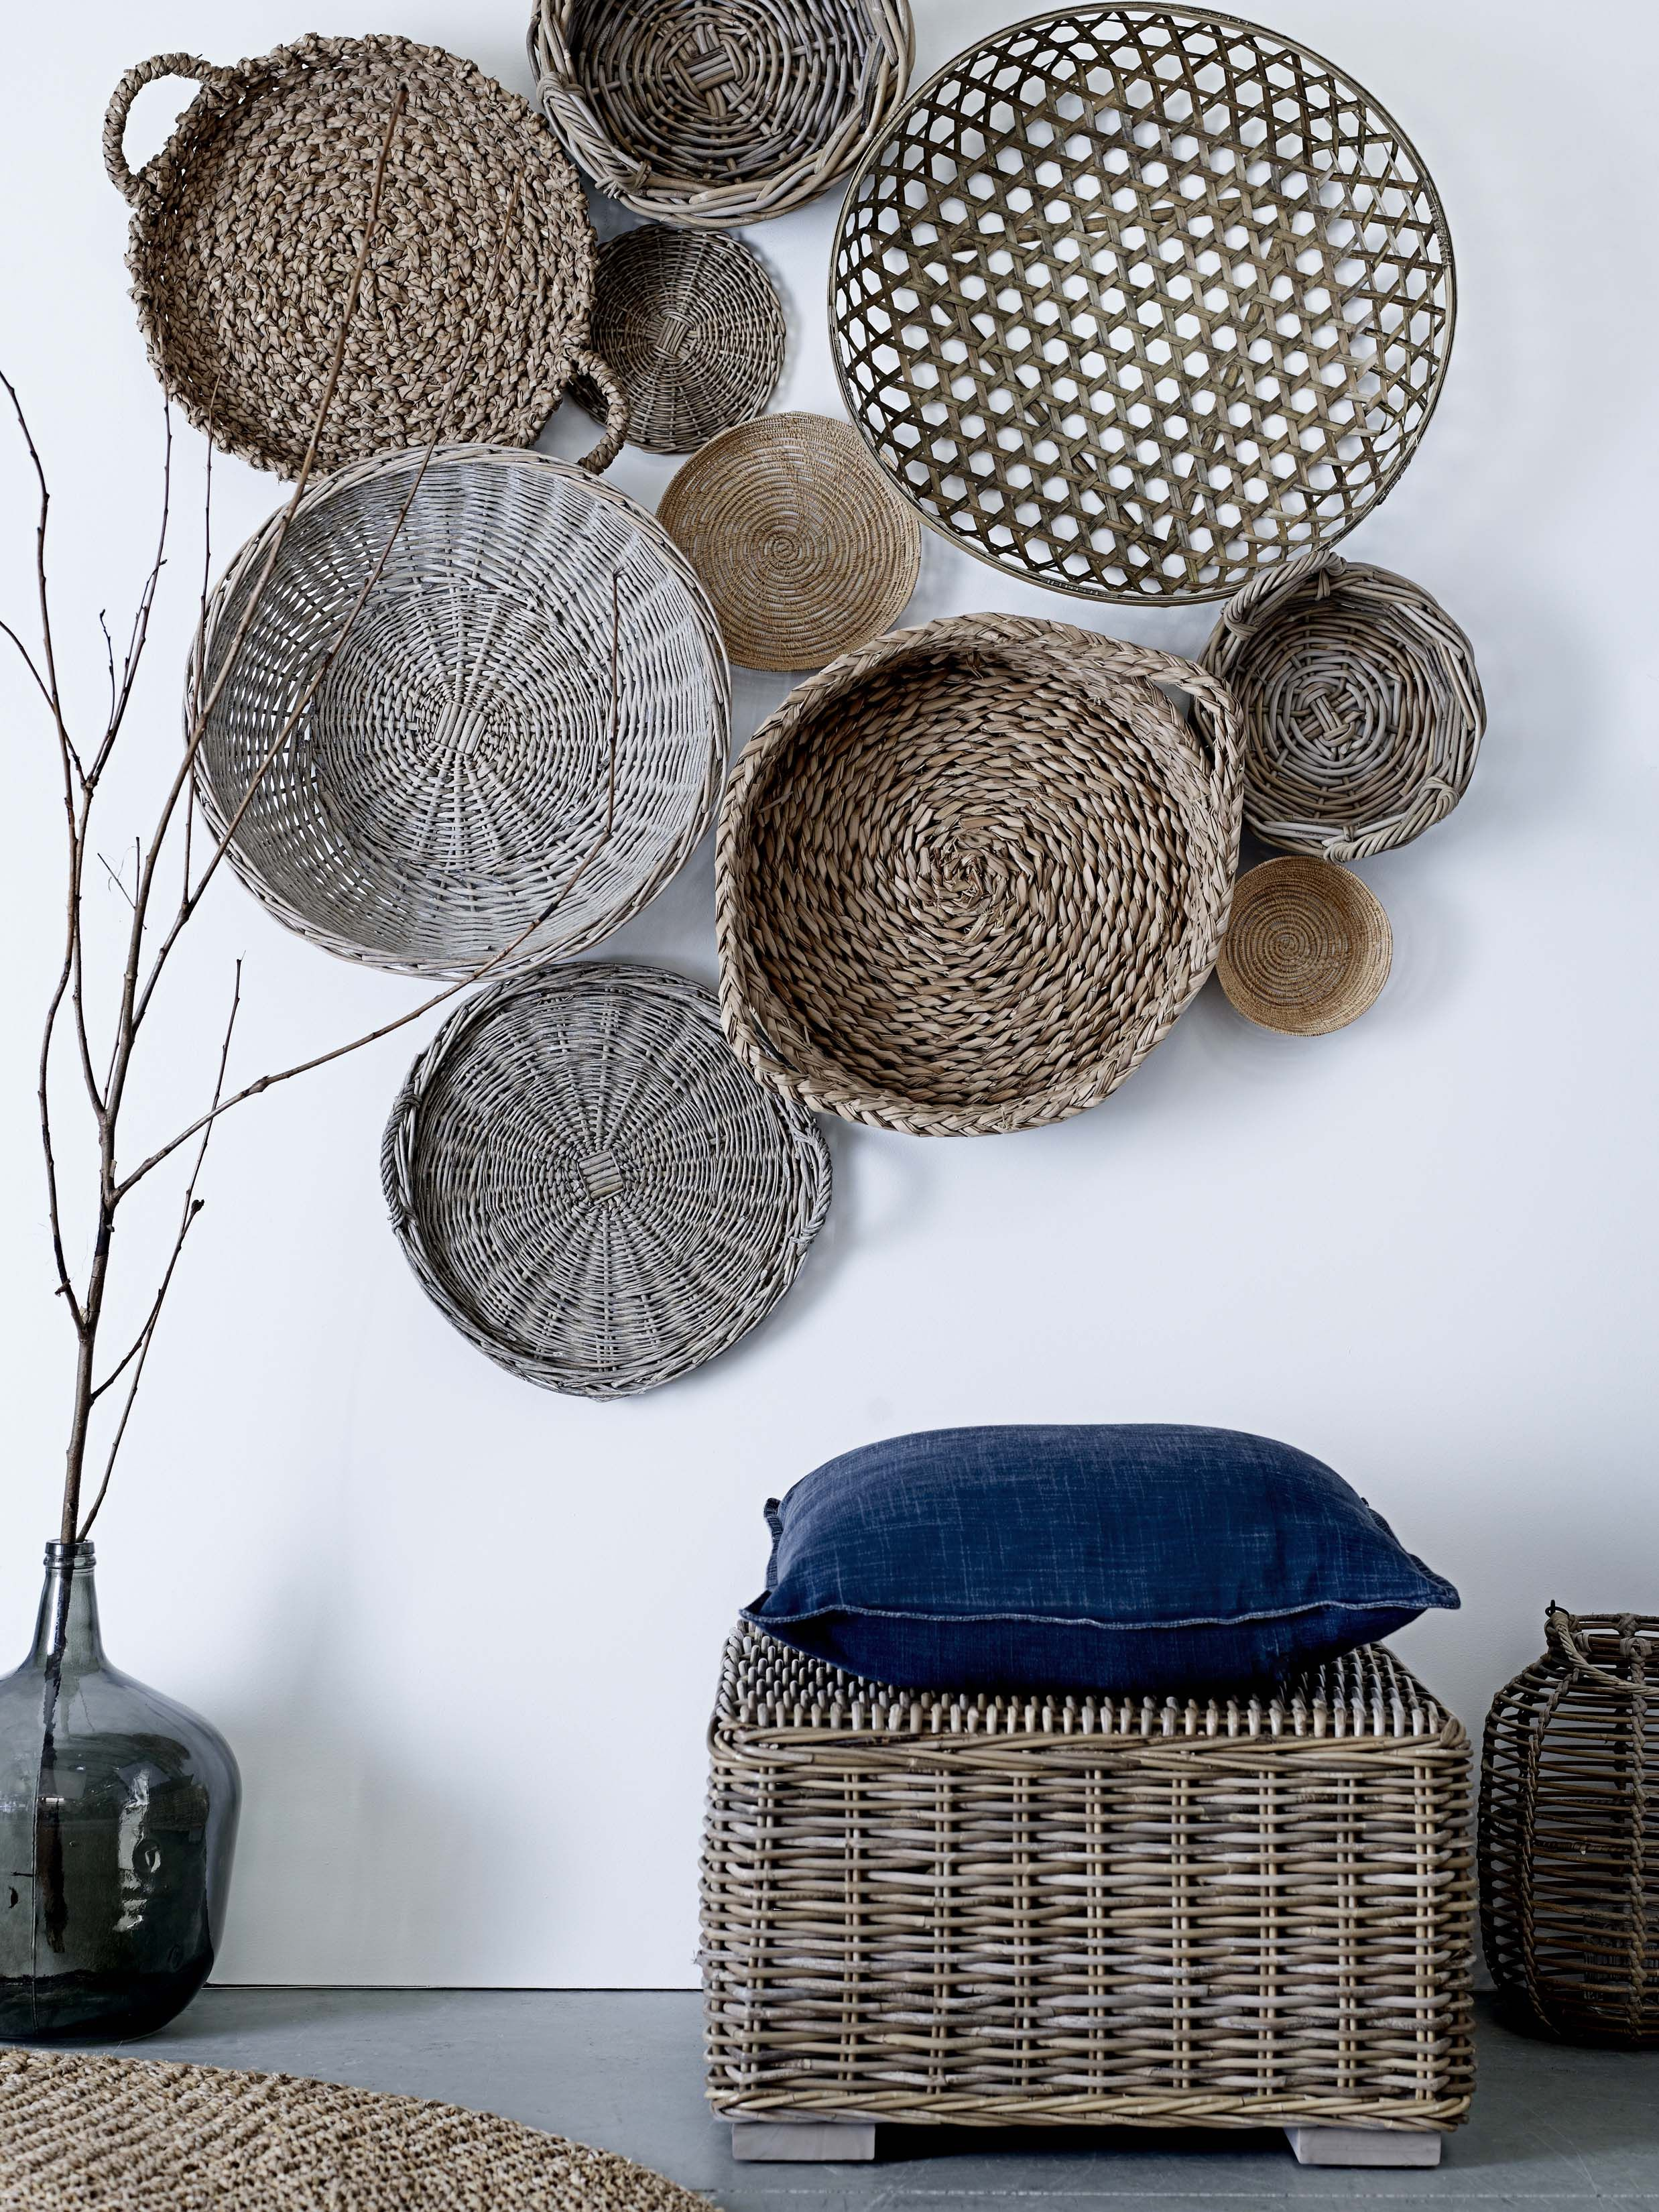 Spotted collections of round things on walls walls wall spotted collections of round things on walls woven basketswicker basketshanging amipublicfo Choice Image